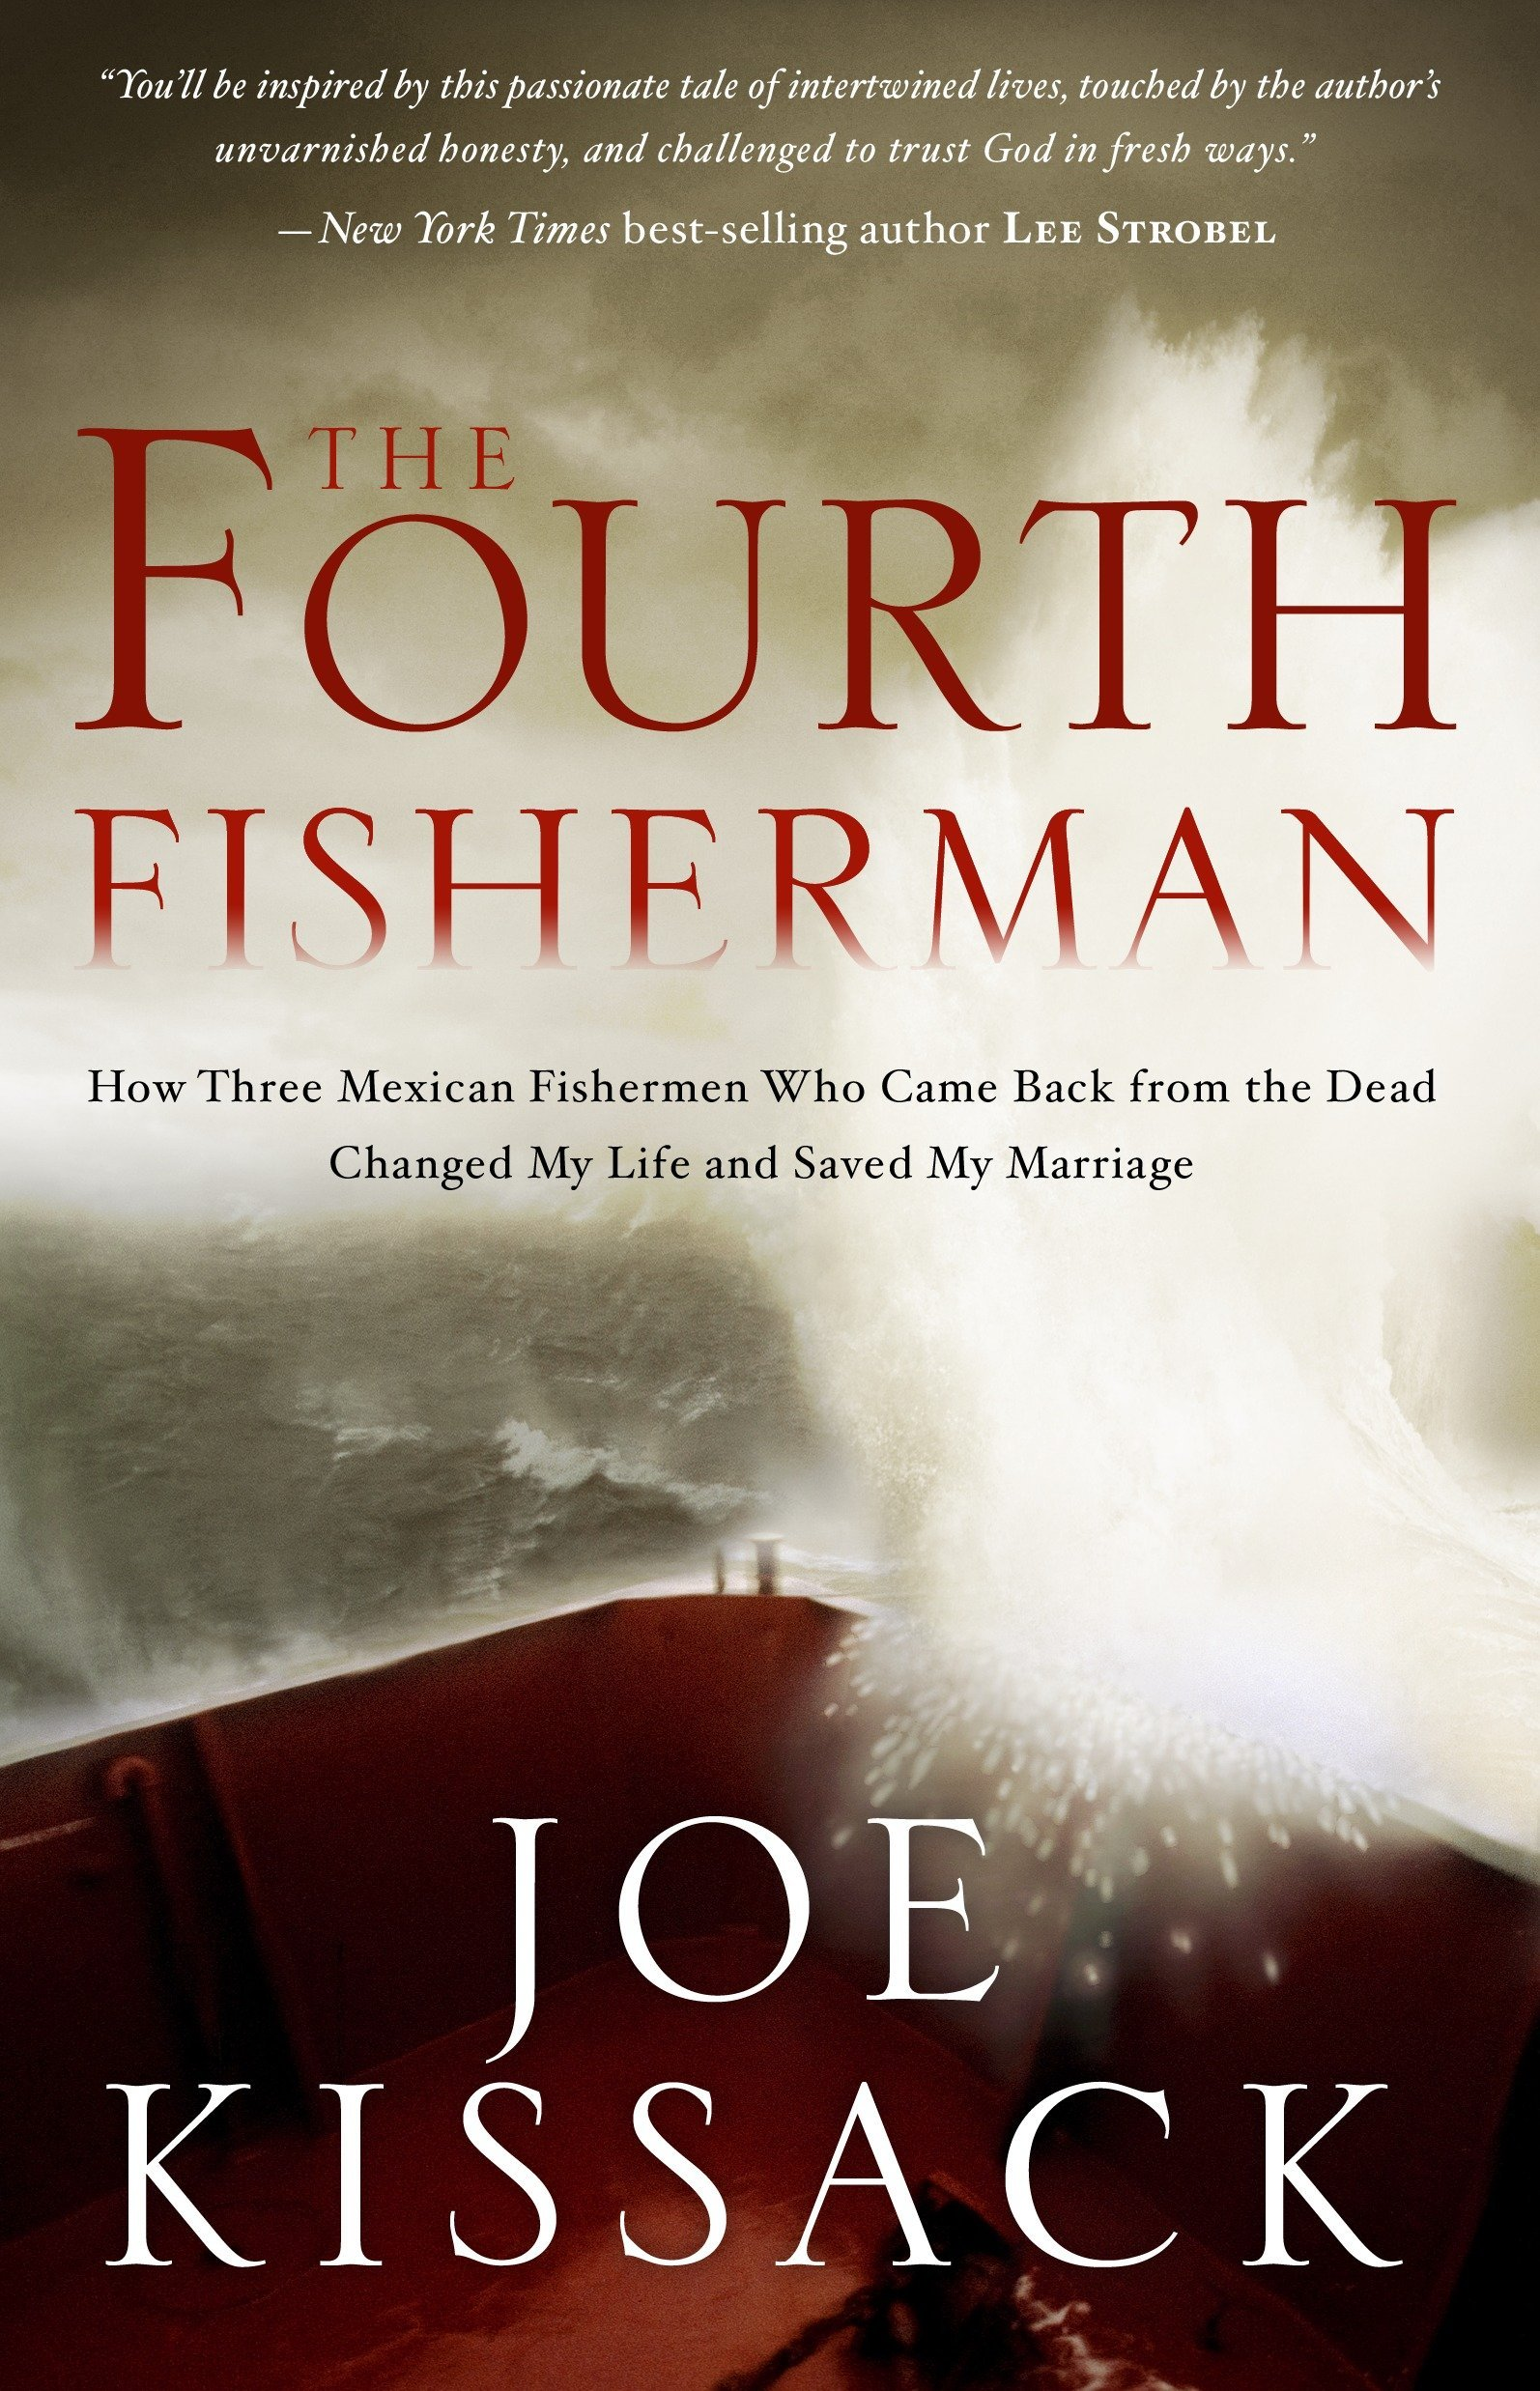 Download The Fourth Fisherman: How Three Mexican Fishermen Who Came Back from the Dead Changed My Life and Saved My Marriage PDF